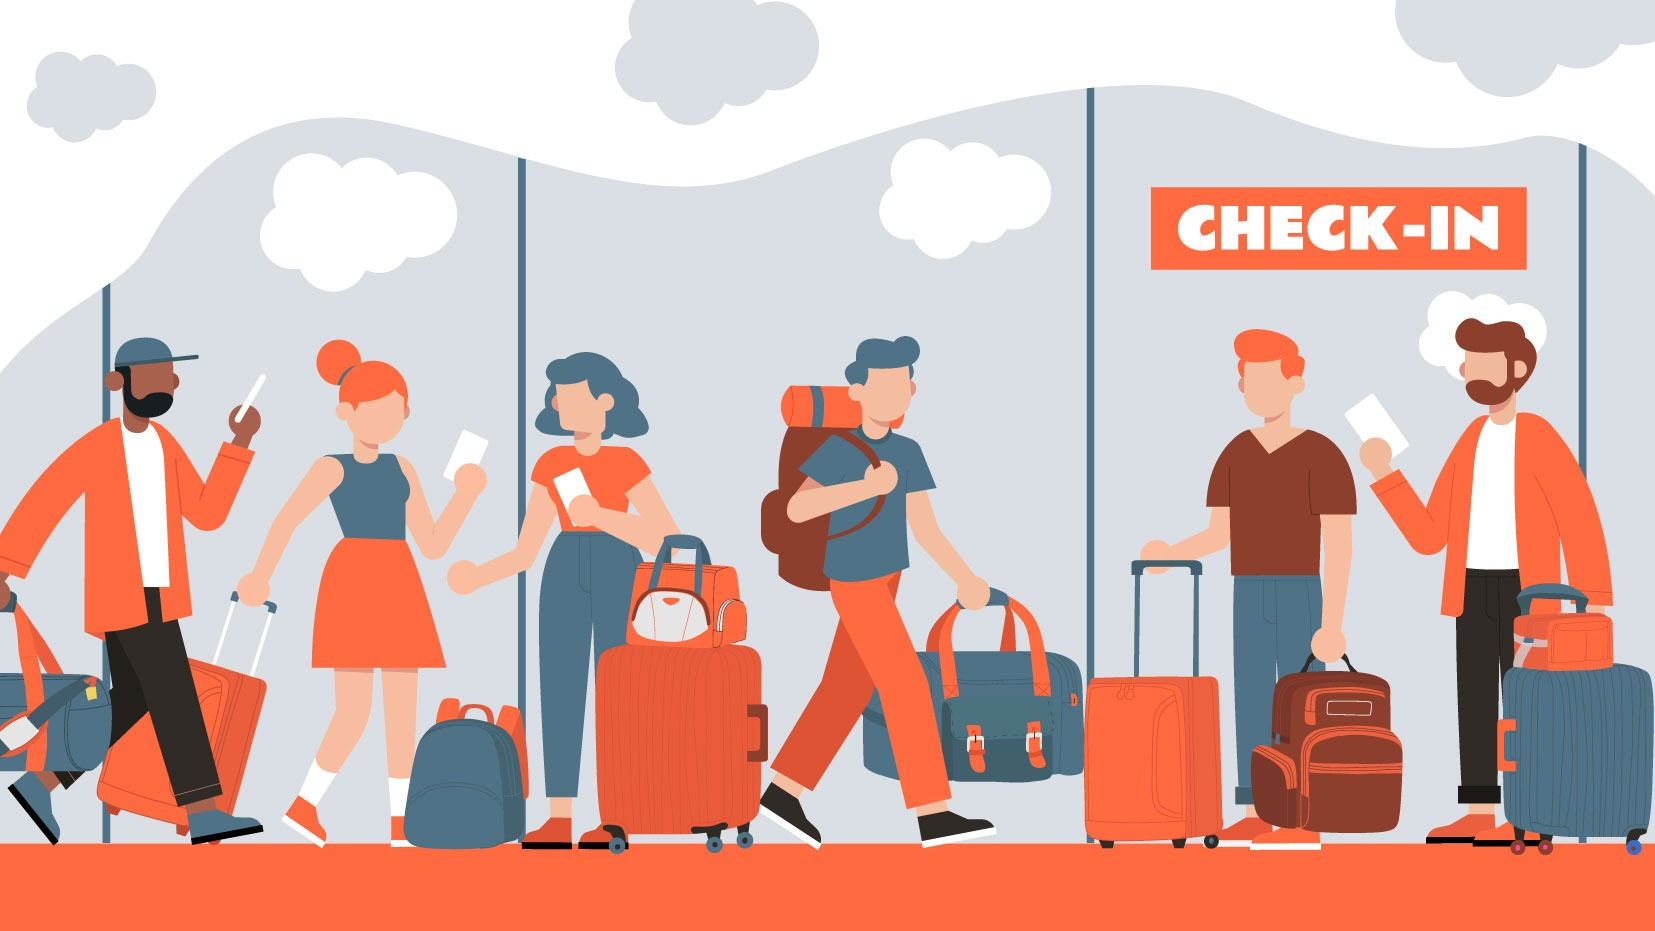 Pack up and Fly: the Luggage Retailer Samsonite Braces for the Return of Travel with Salesforce Commerce Cloud